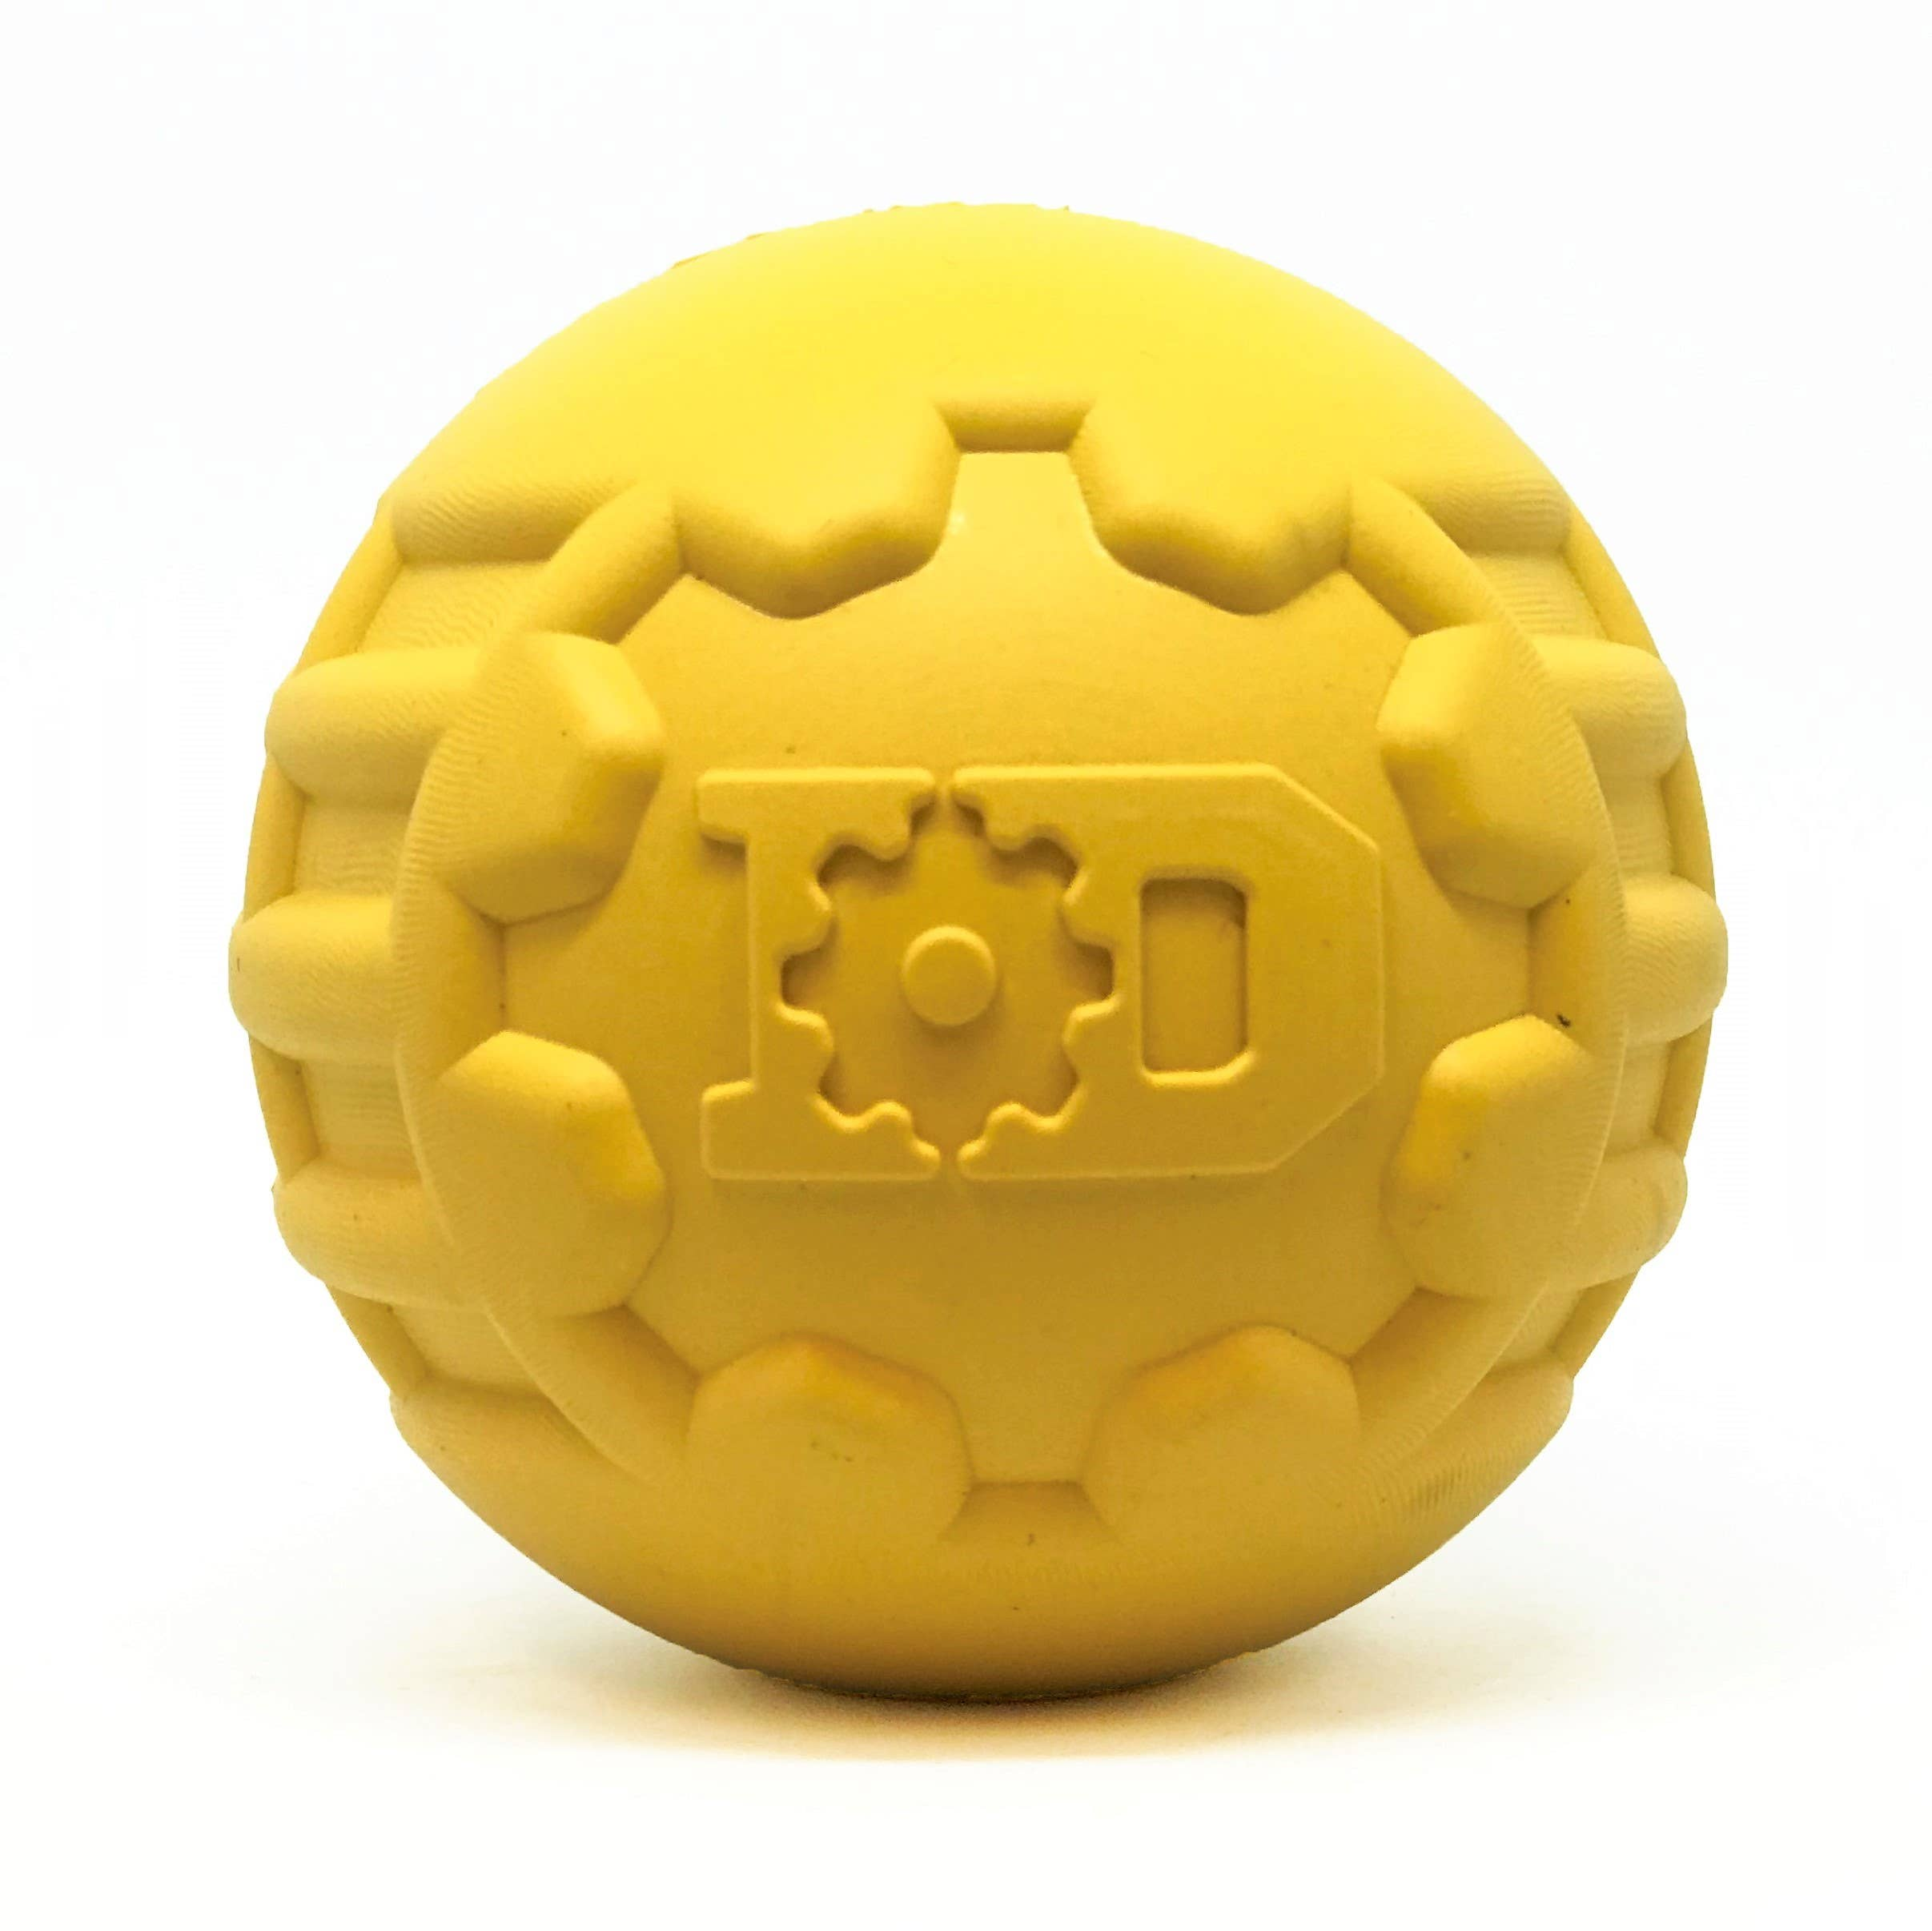 ID Ball - Chew Toy - Retrieving Toy - Large - Yellow   Trada Marketplace